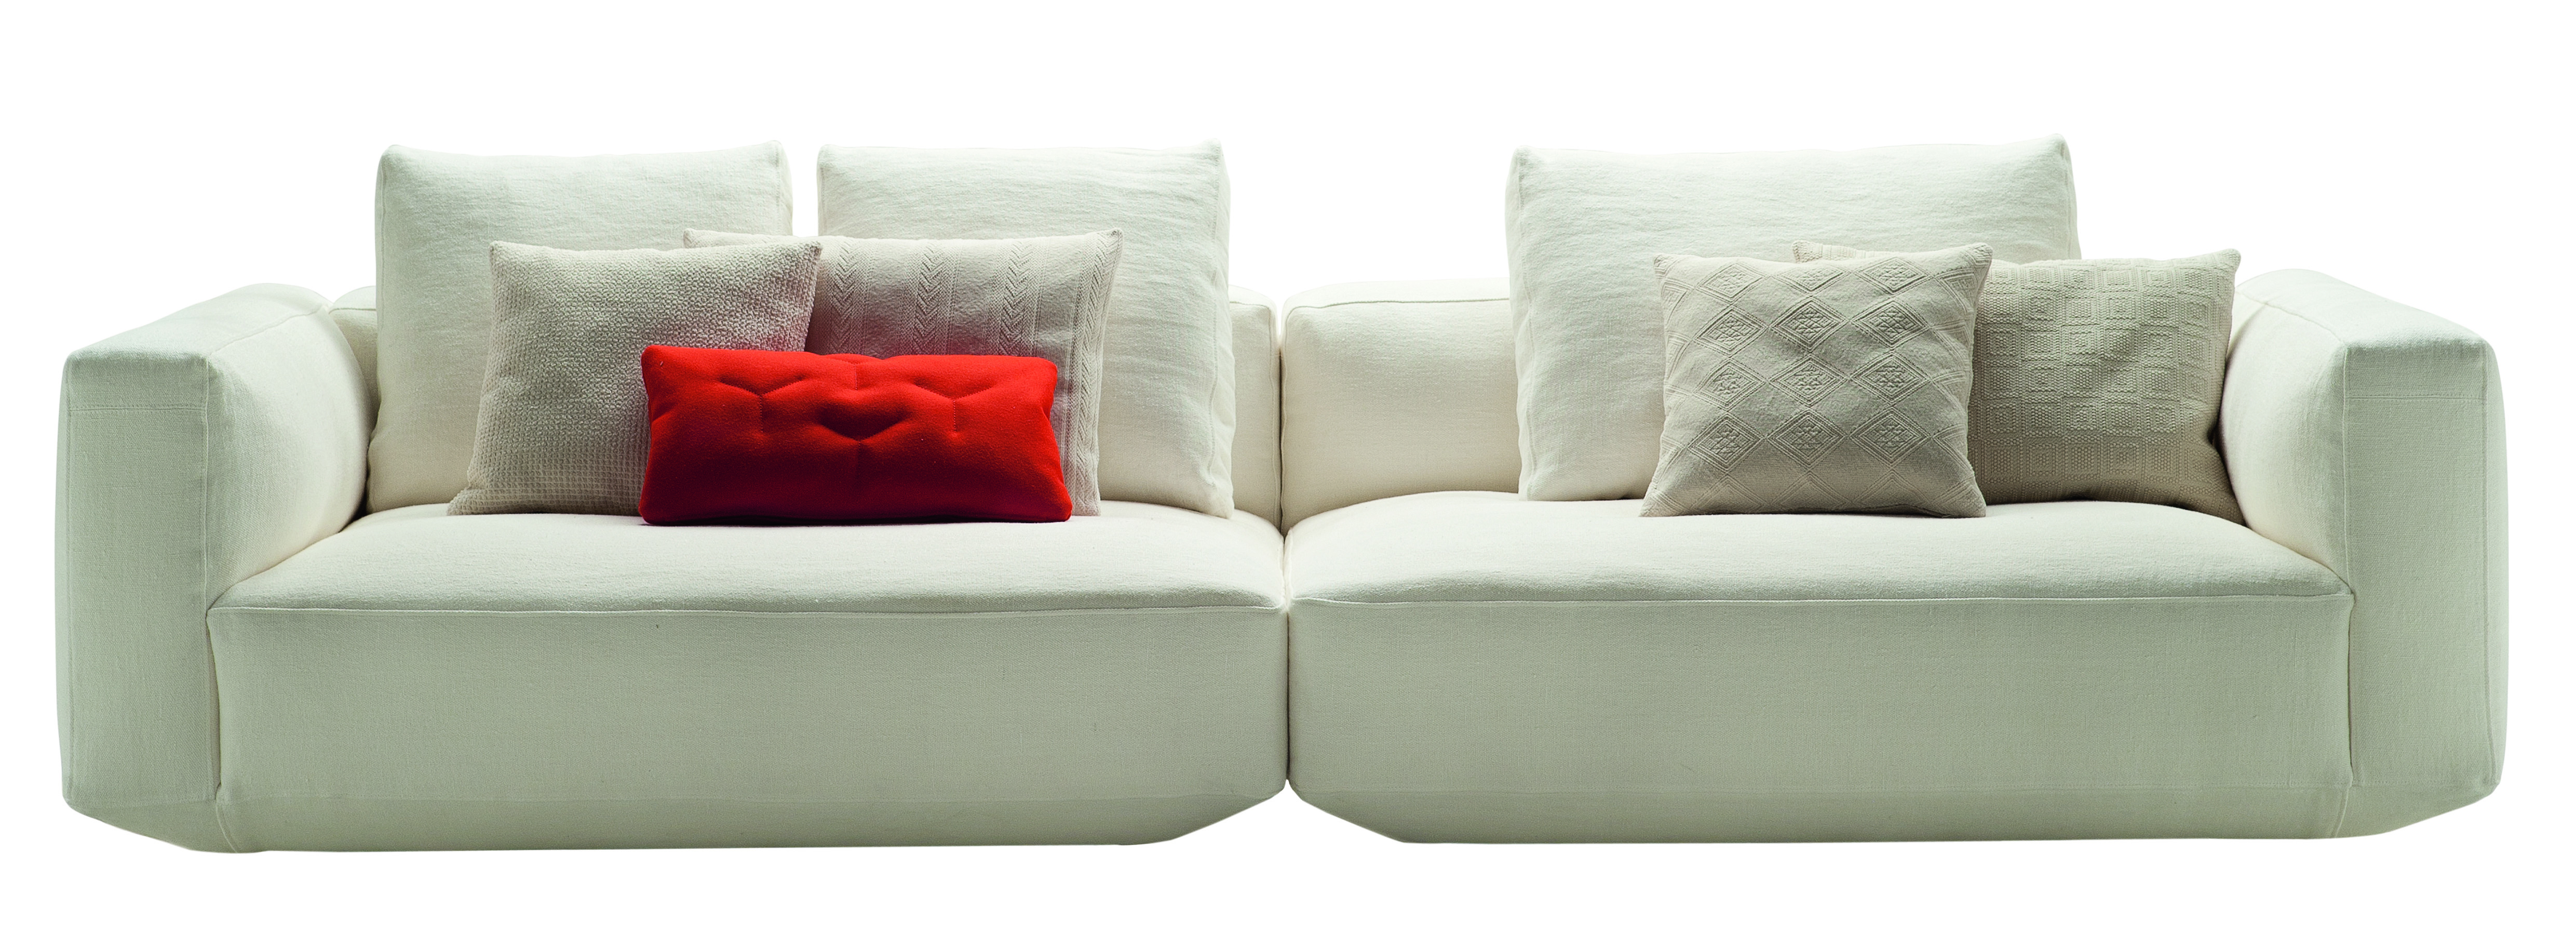 zanotta sofa bed clear arp table sthle great ruben double with